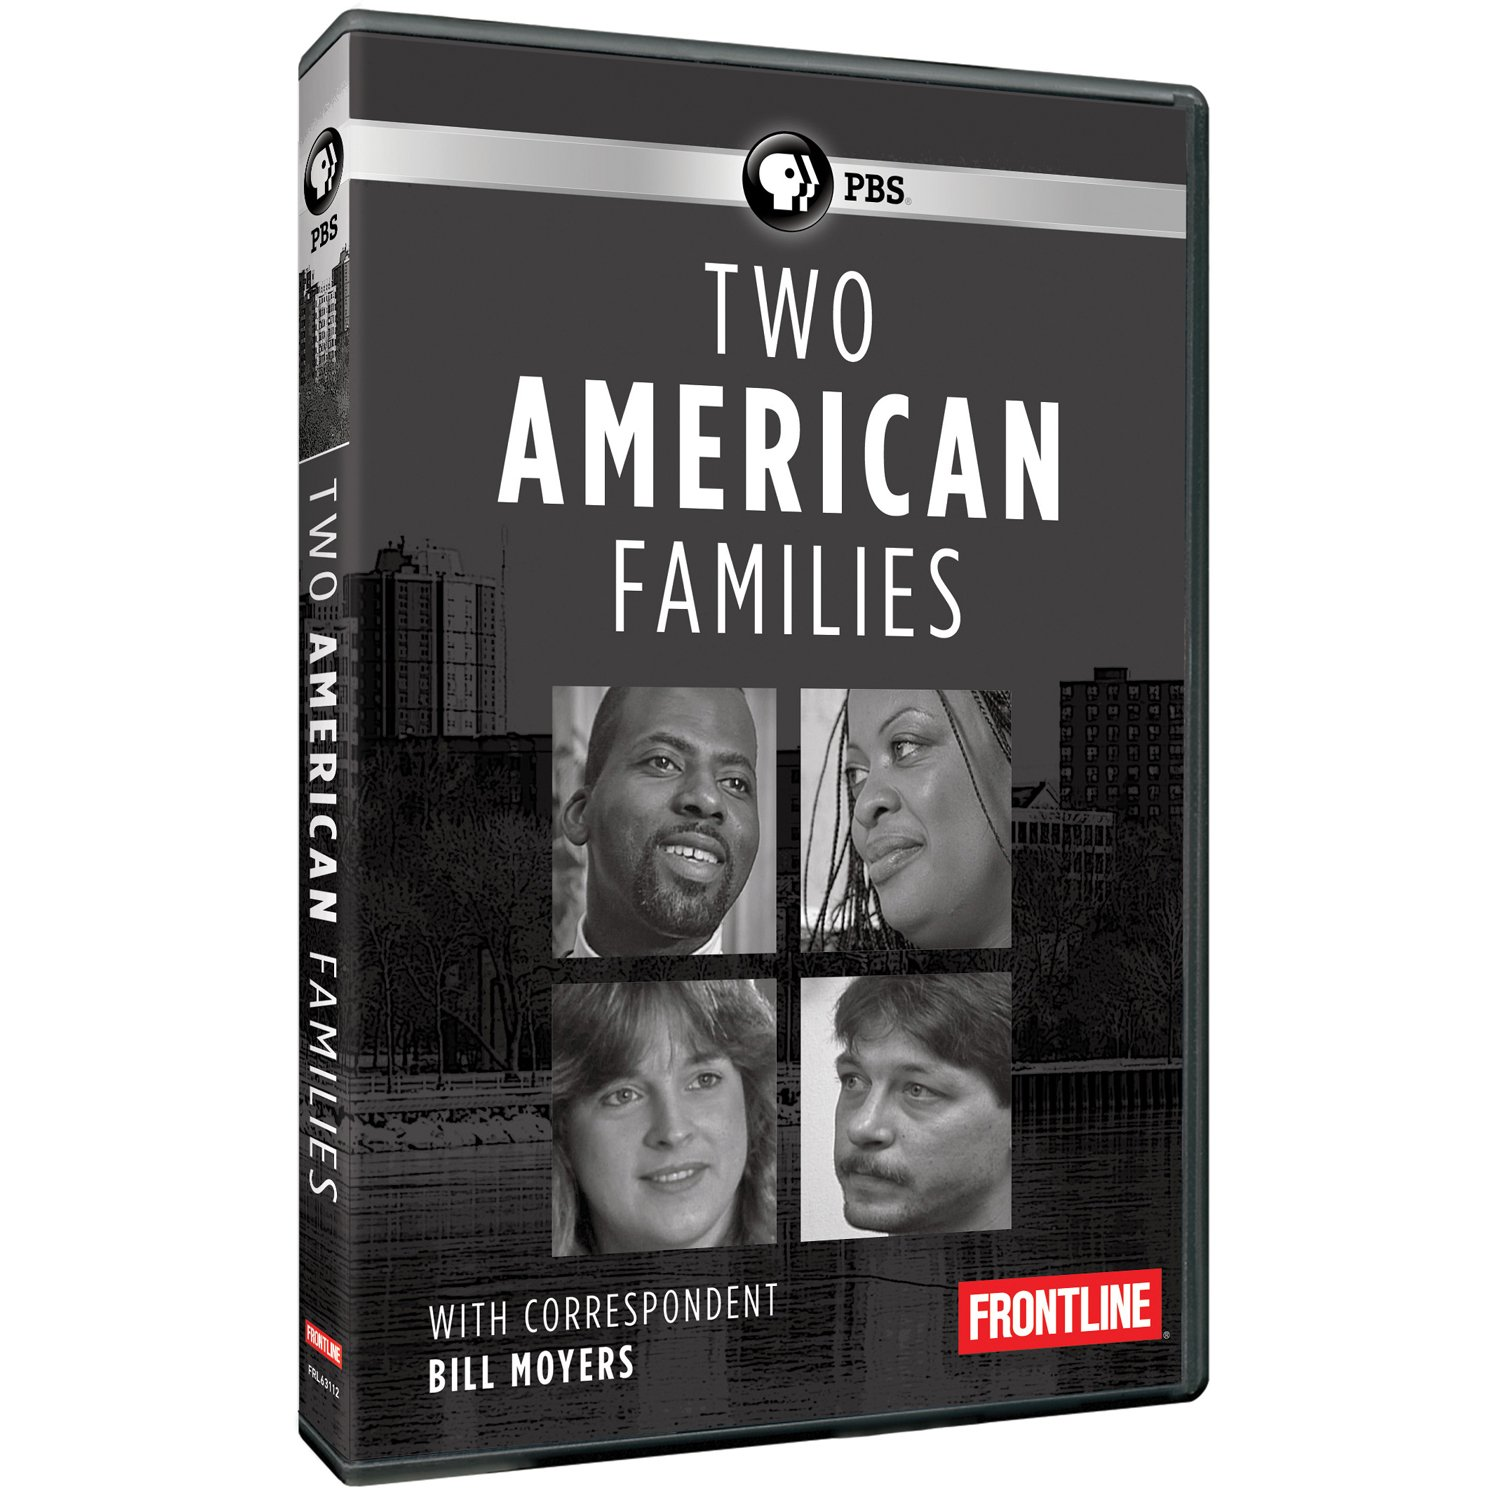 DVD : Frontline: Two American Families (DVD)